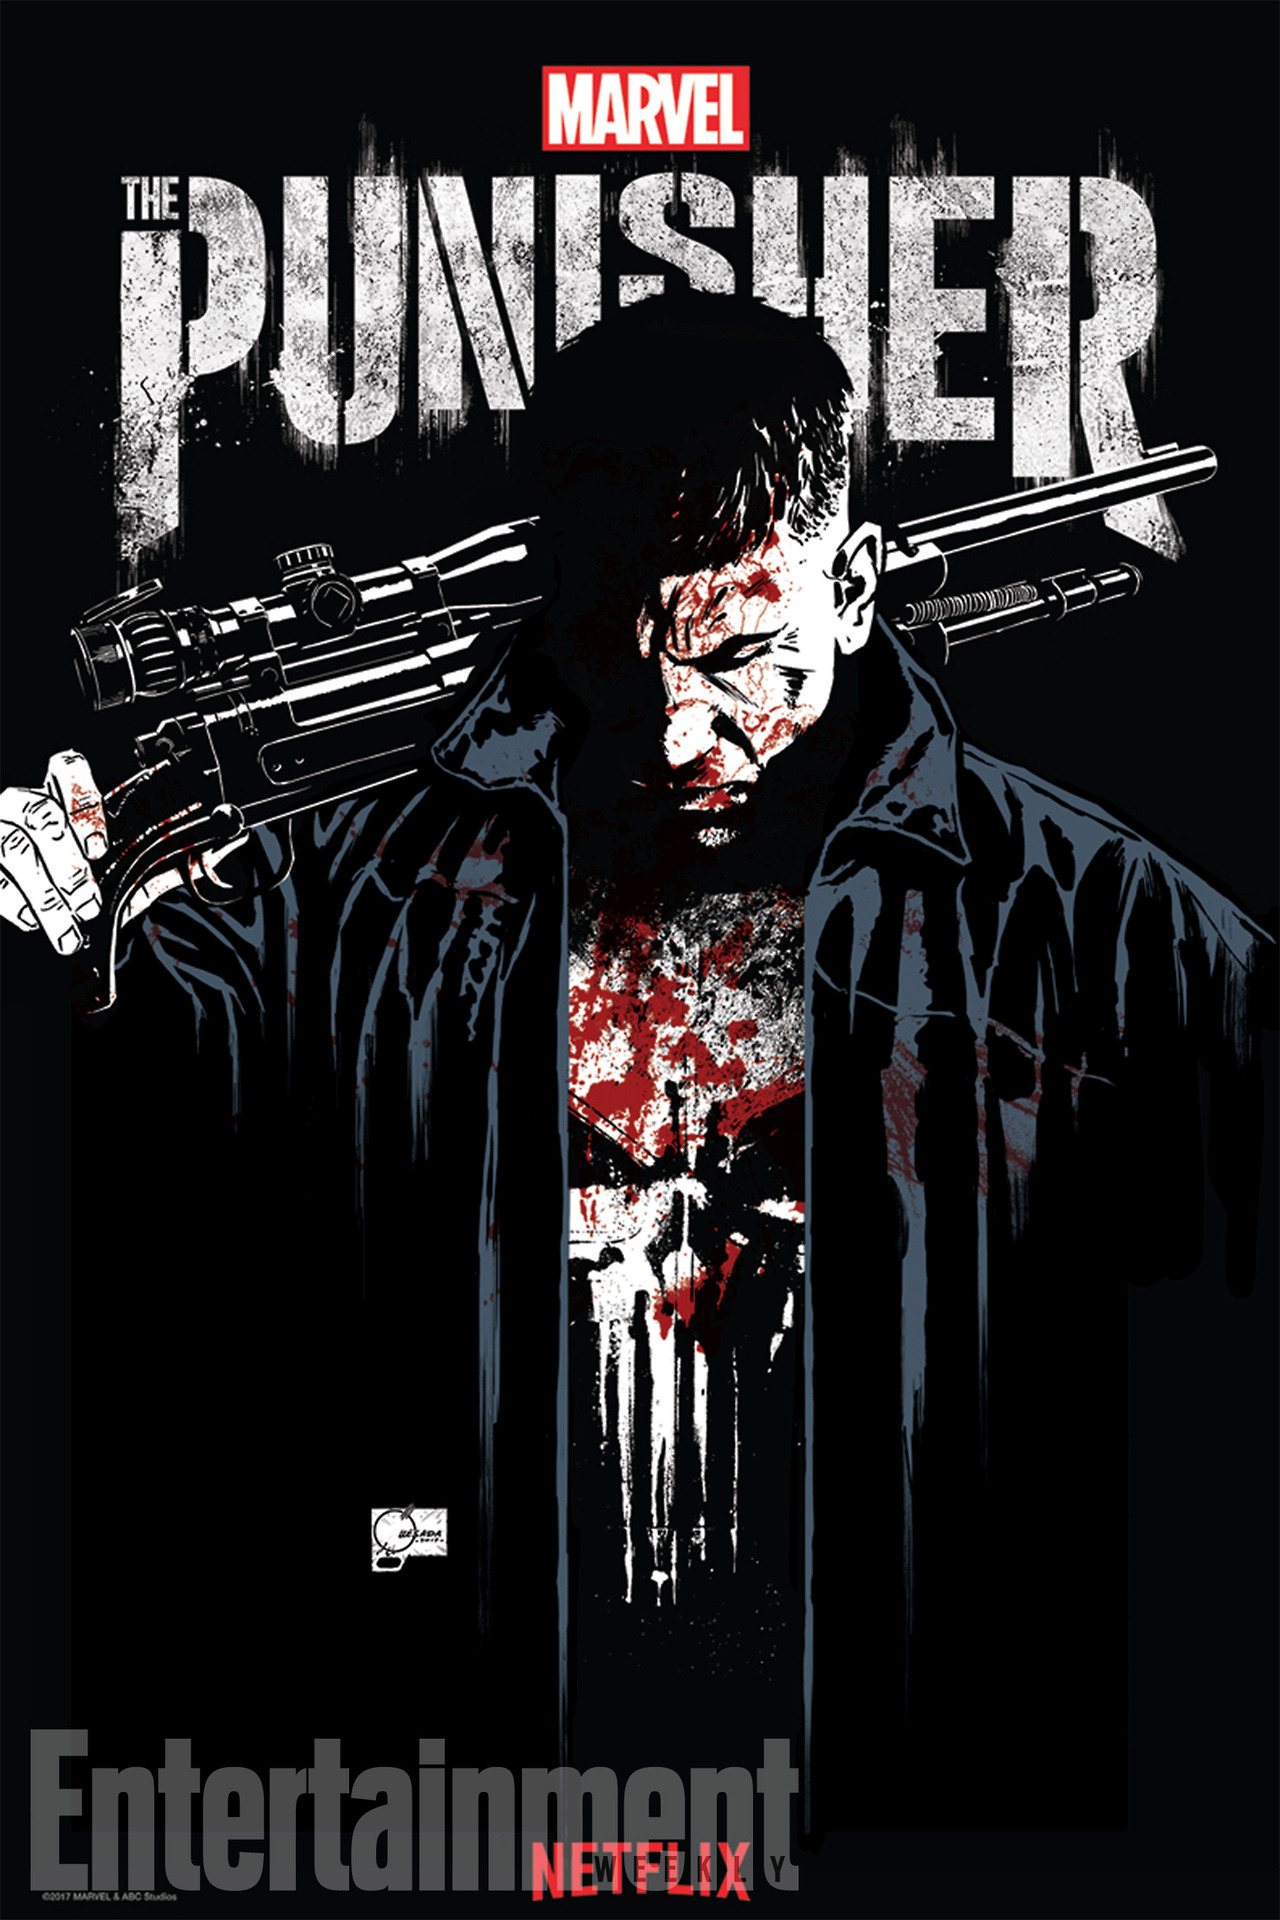 """The Punisher"" – Netflix Series, Season 1 Review By Racco"